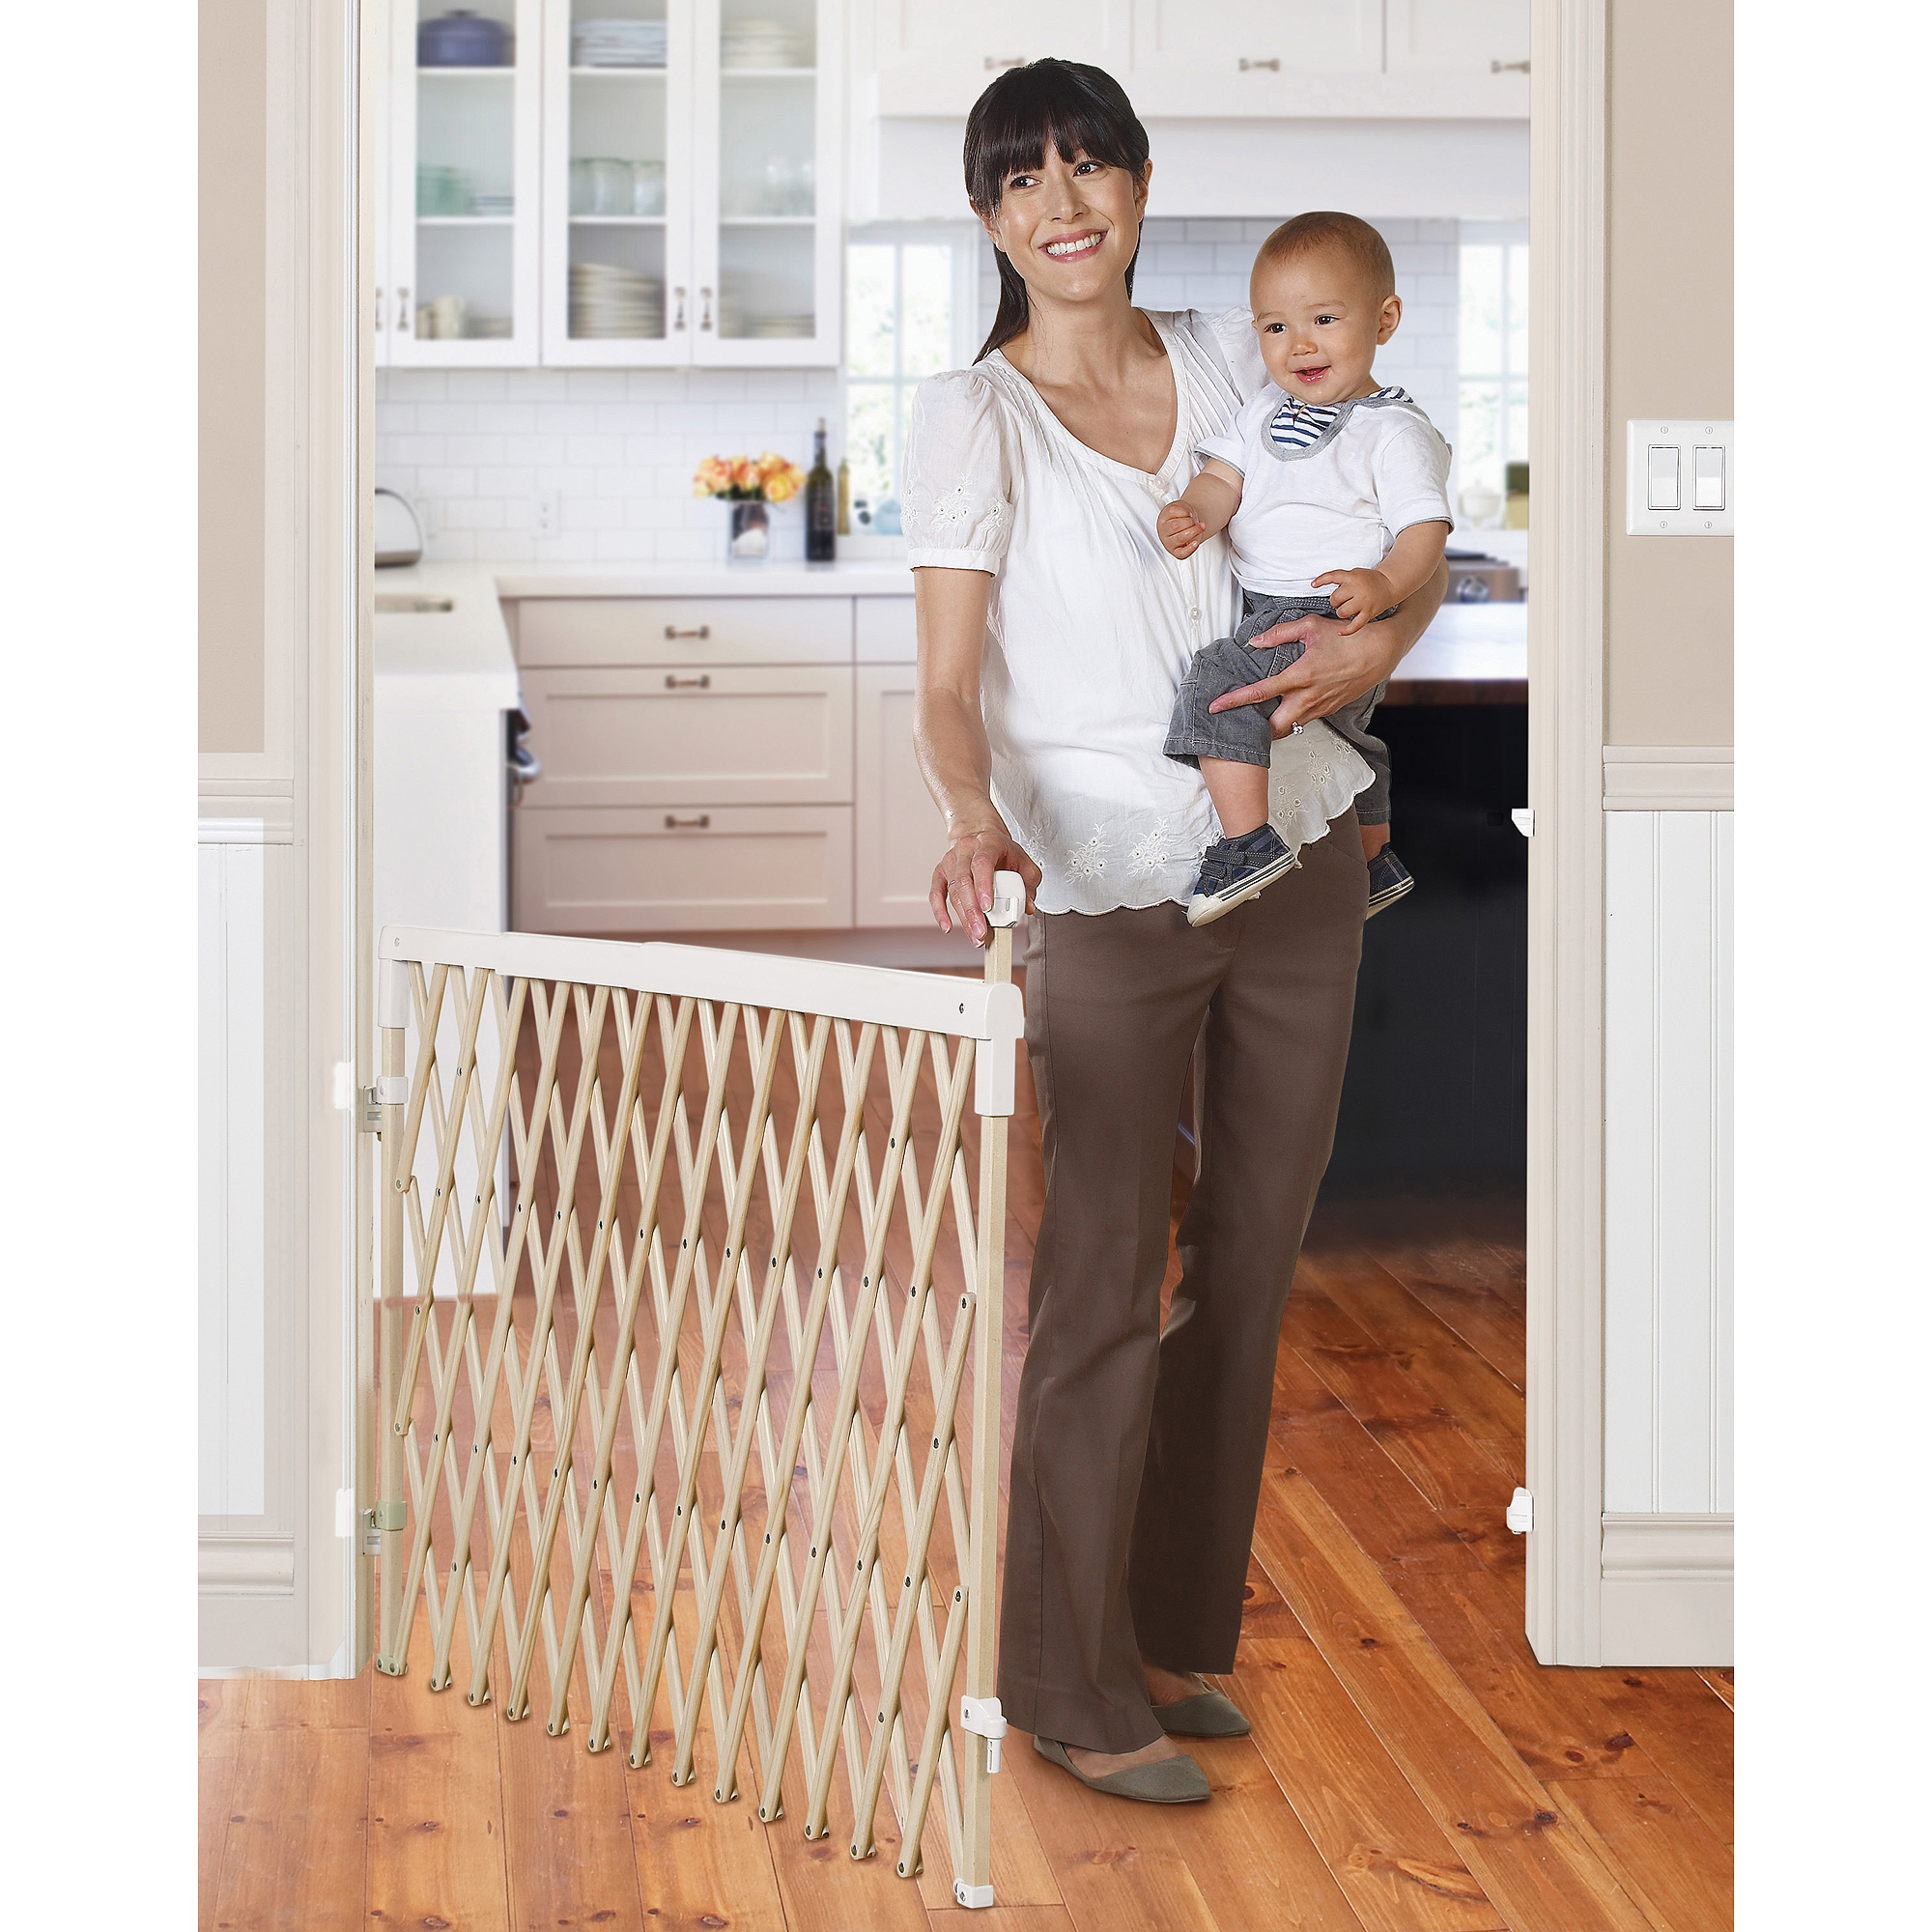 Munchkin Wide Spaces Expanding Gate Model 36003